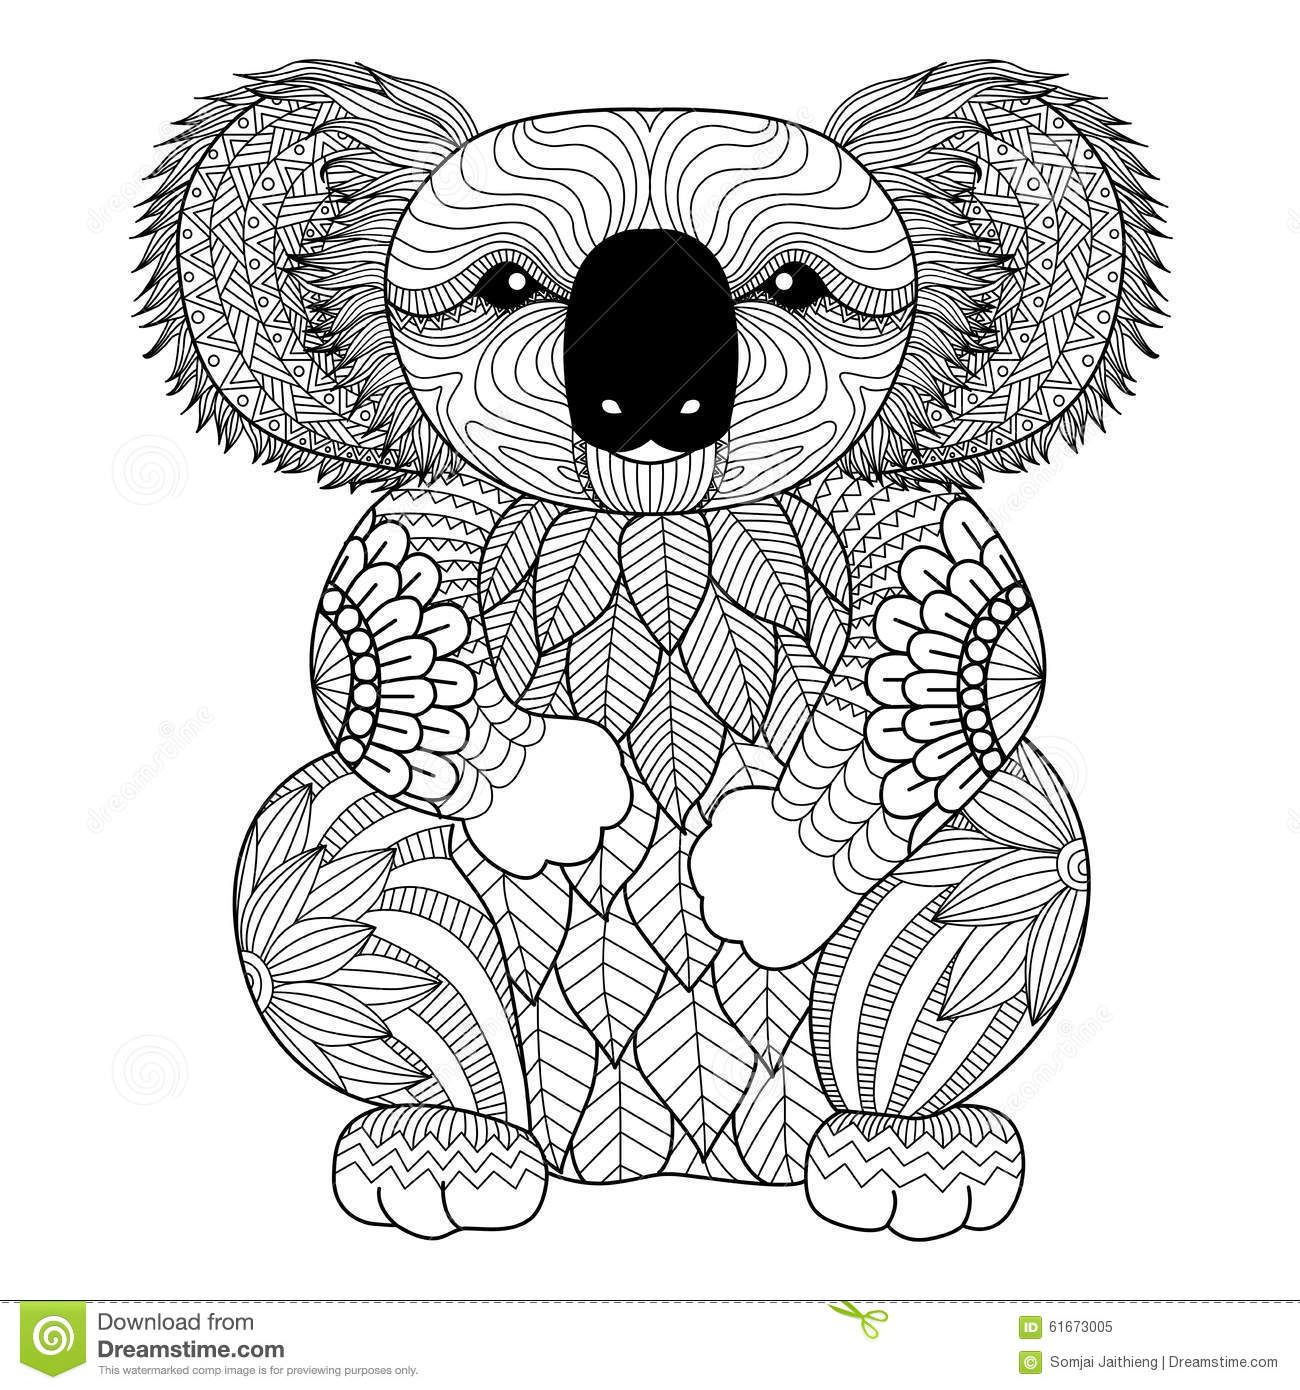 Drawing Zentangle Koala For Coloring Page Shirt Design Effect